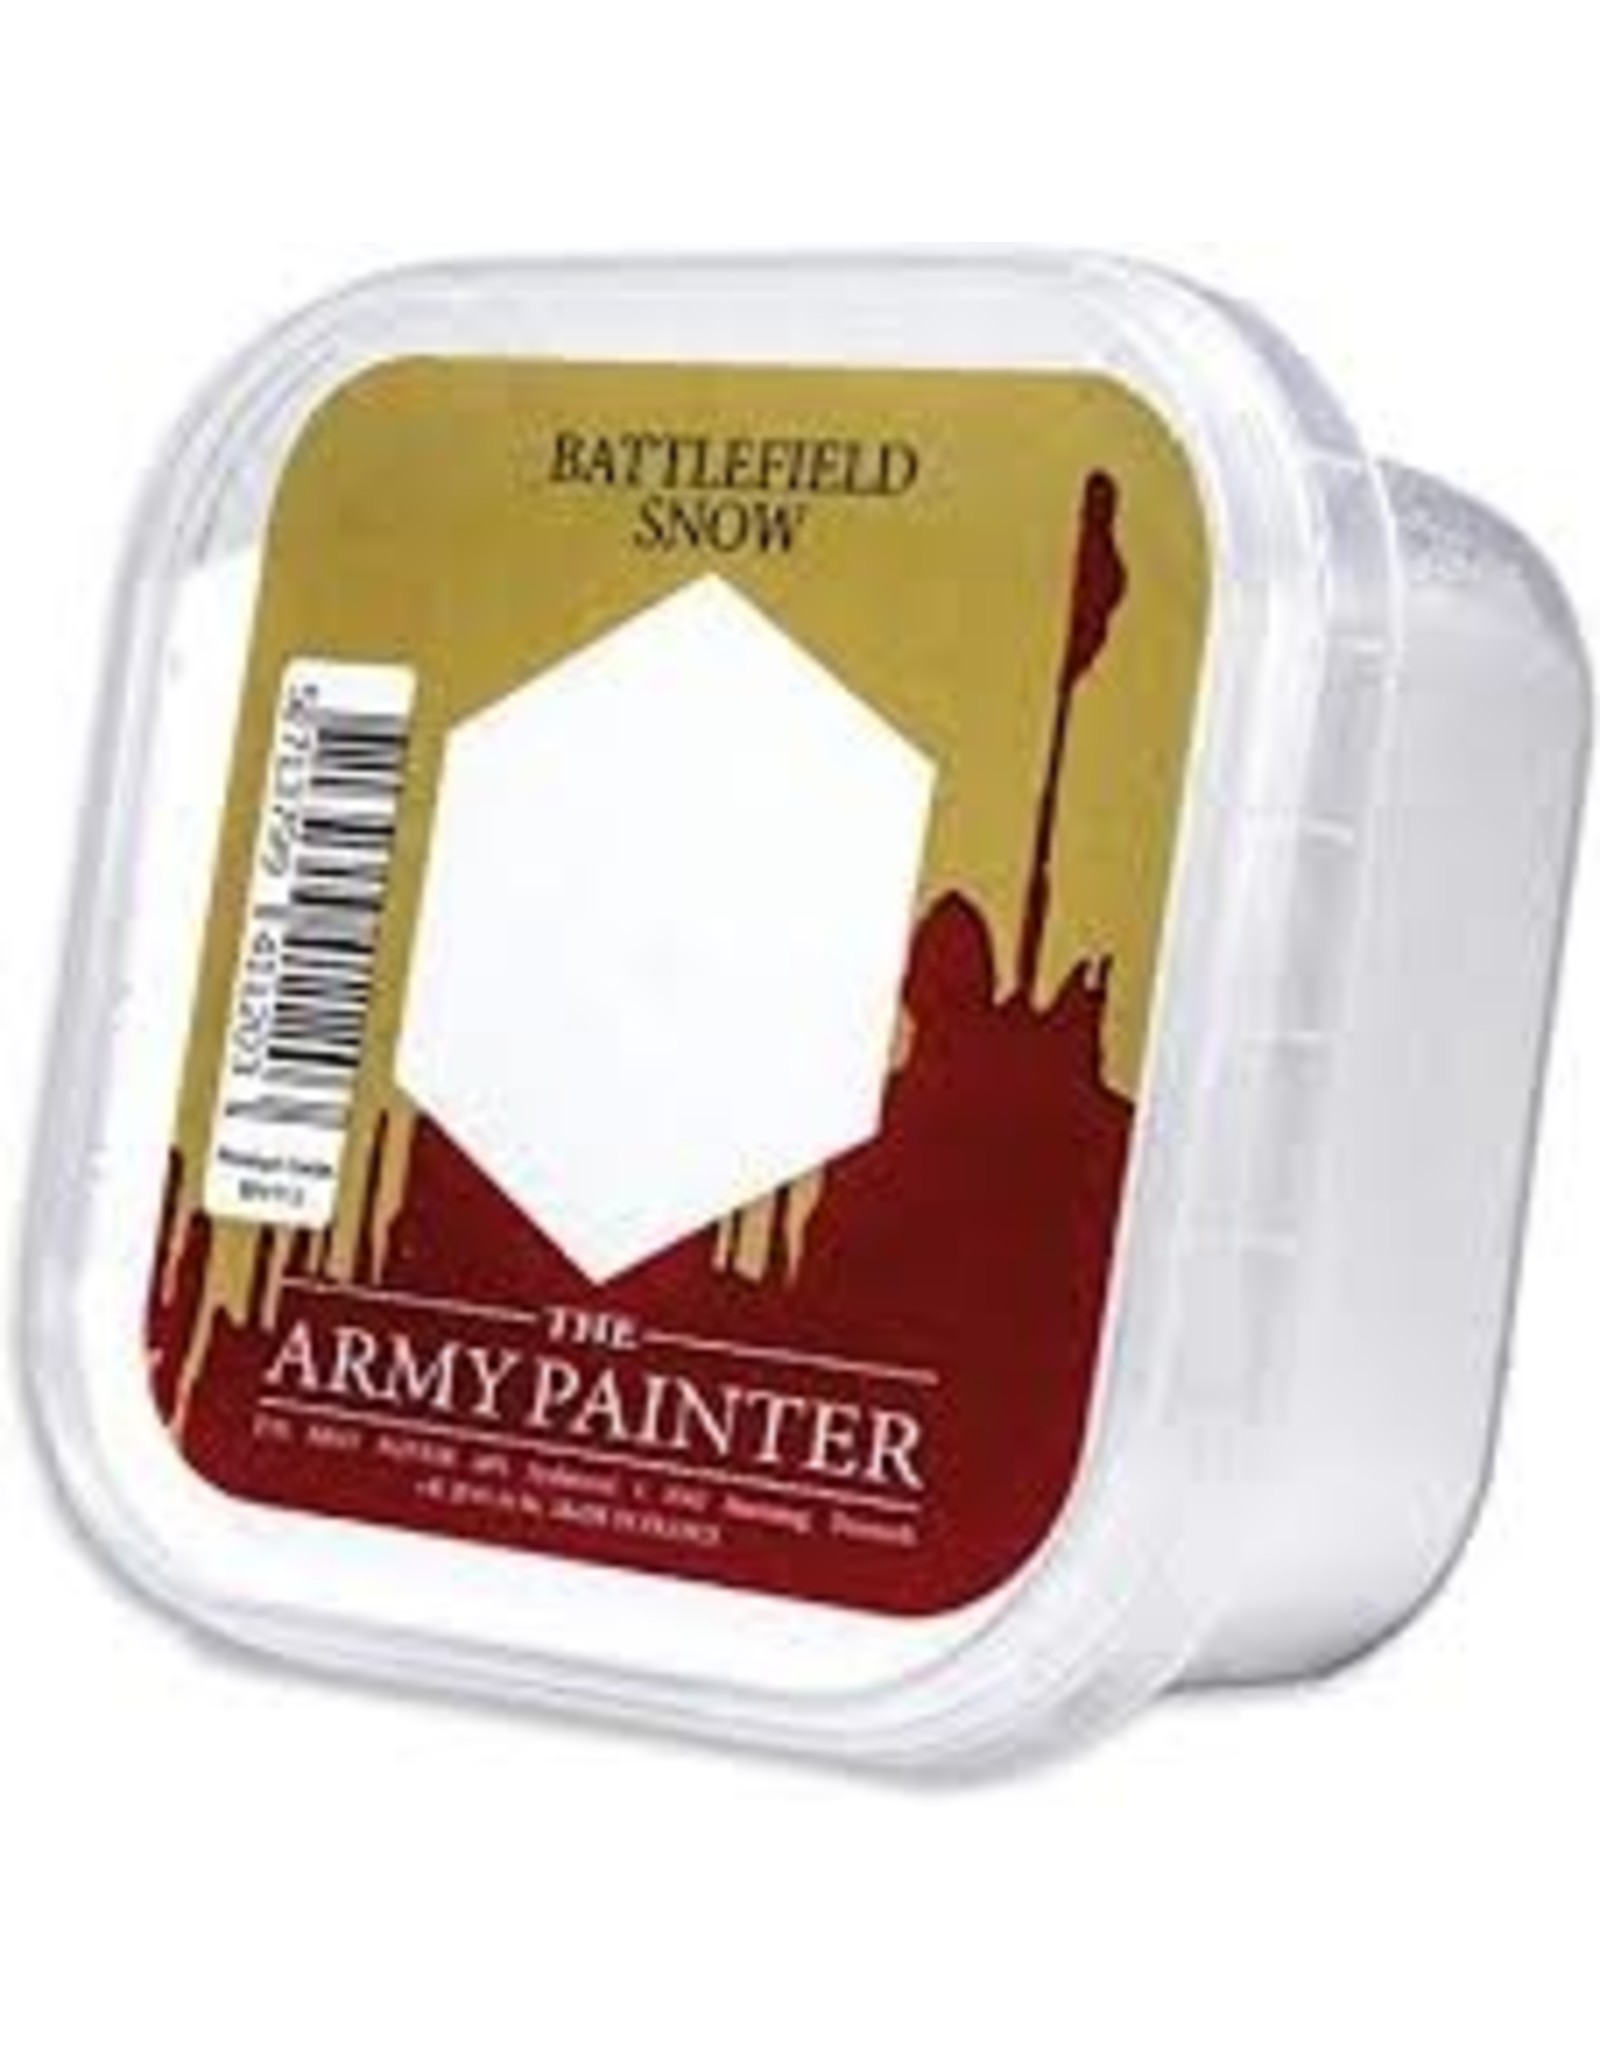 Army Painter Battlefield Snow Basing